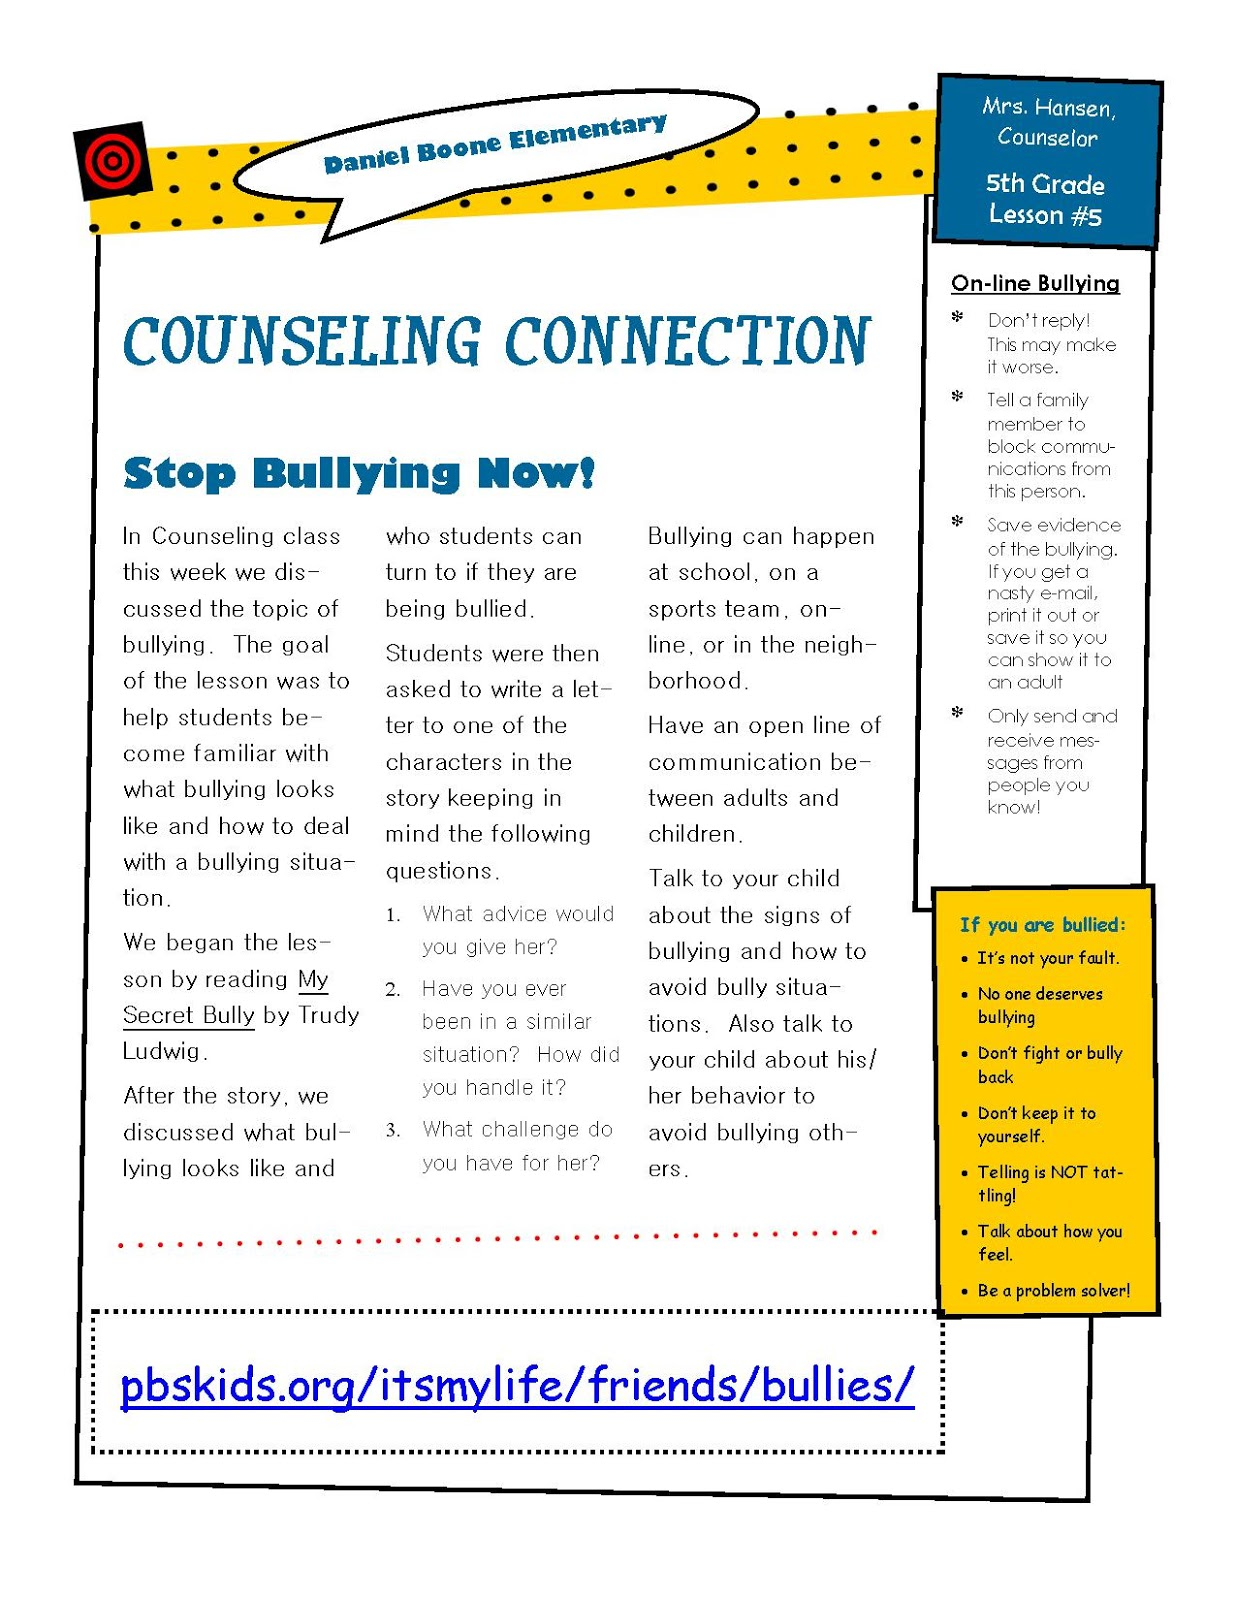 Hanselor The Counselor 5th Grade Bullying Lesson